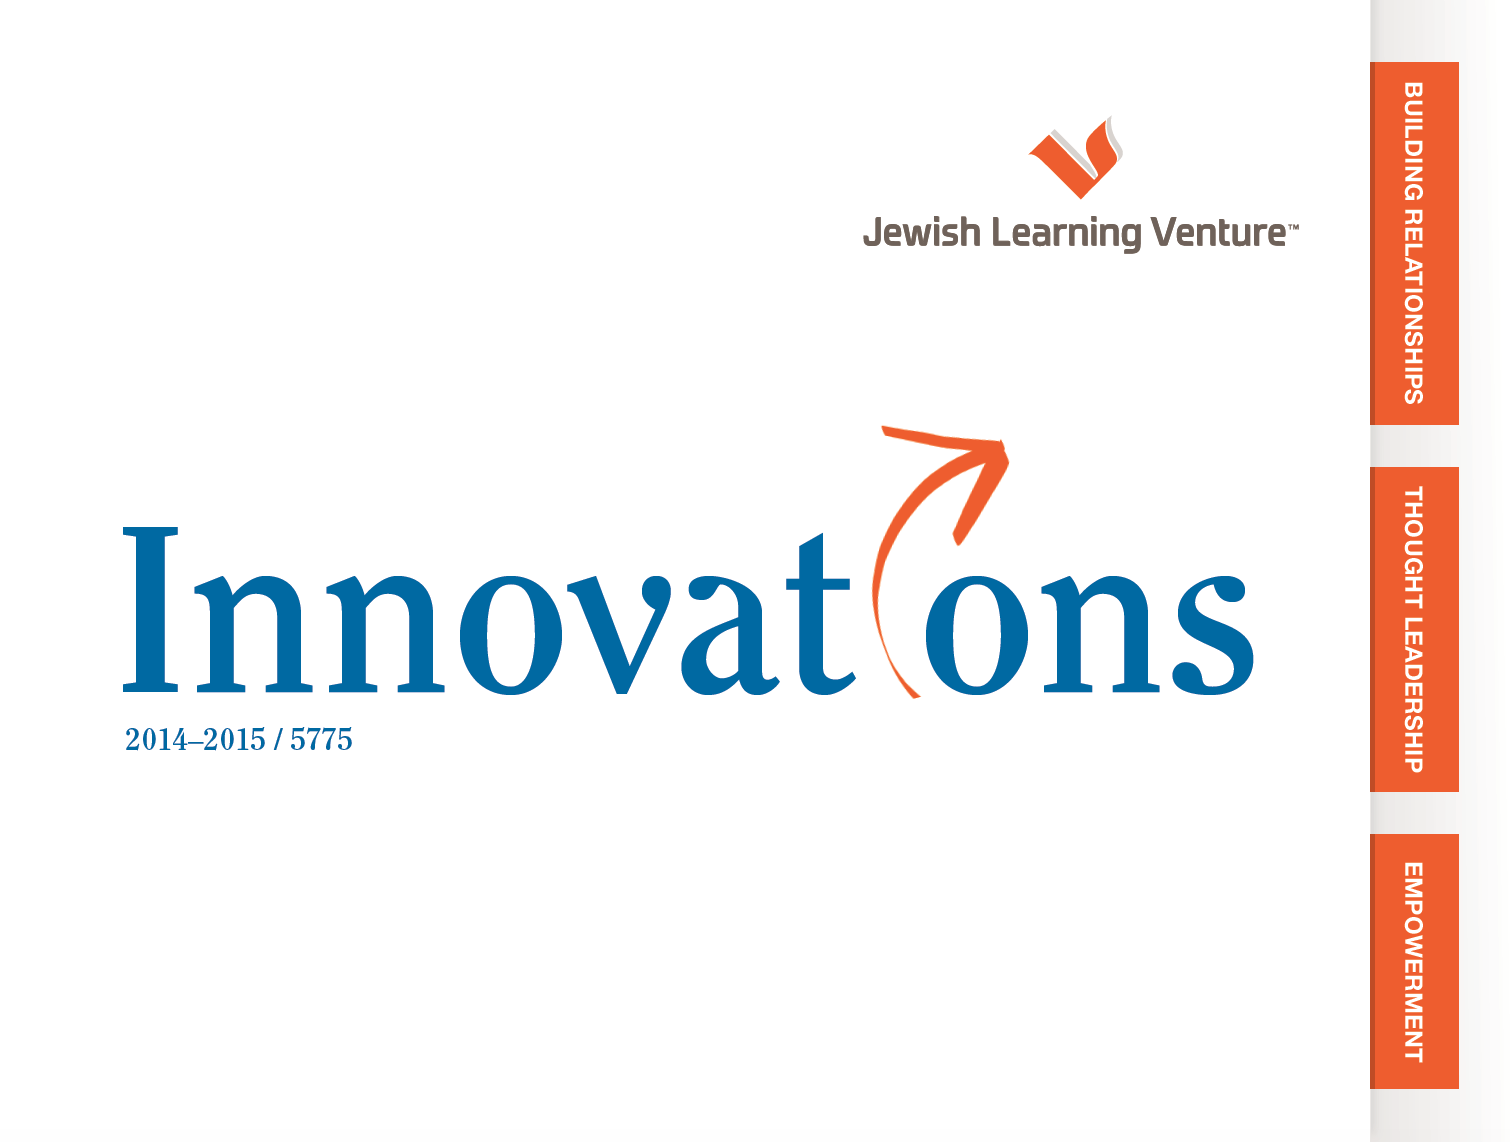 """1. An image of the word """"innovation"""" across the middle. Underneath are orange and white letters saying: """"We reached. We impacted. We hosted. We connected. We trained. We delivered. We convened. We taught. We strengthened. We generated. We launched."""" Above the word """"innovation"""" is a quote written by the Board President, Jonathan M. Broder saying: """"Jewish Learning Venture is a local and national leader and trendsetter, and constant pursuit of excellence is its hallmark"""""""